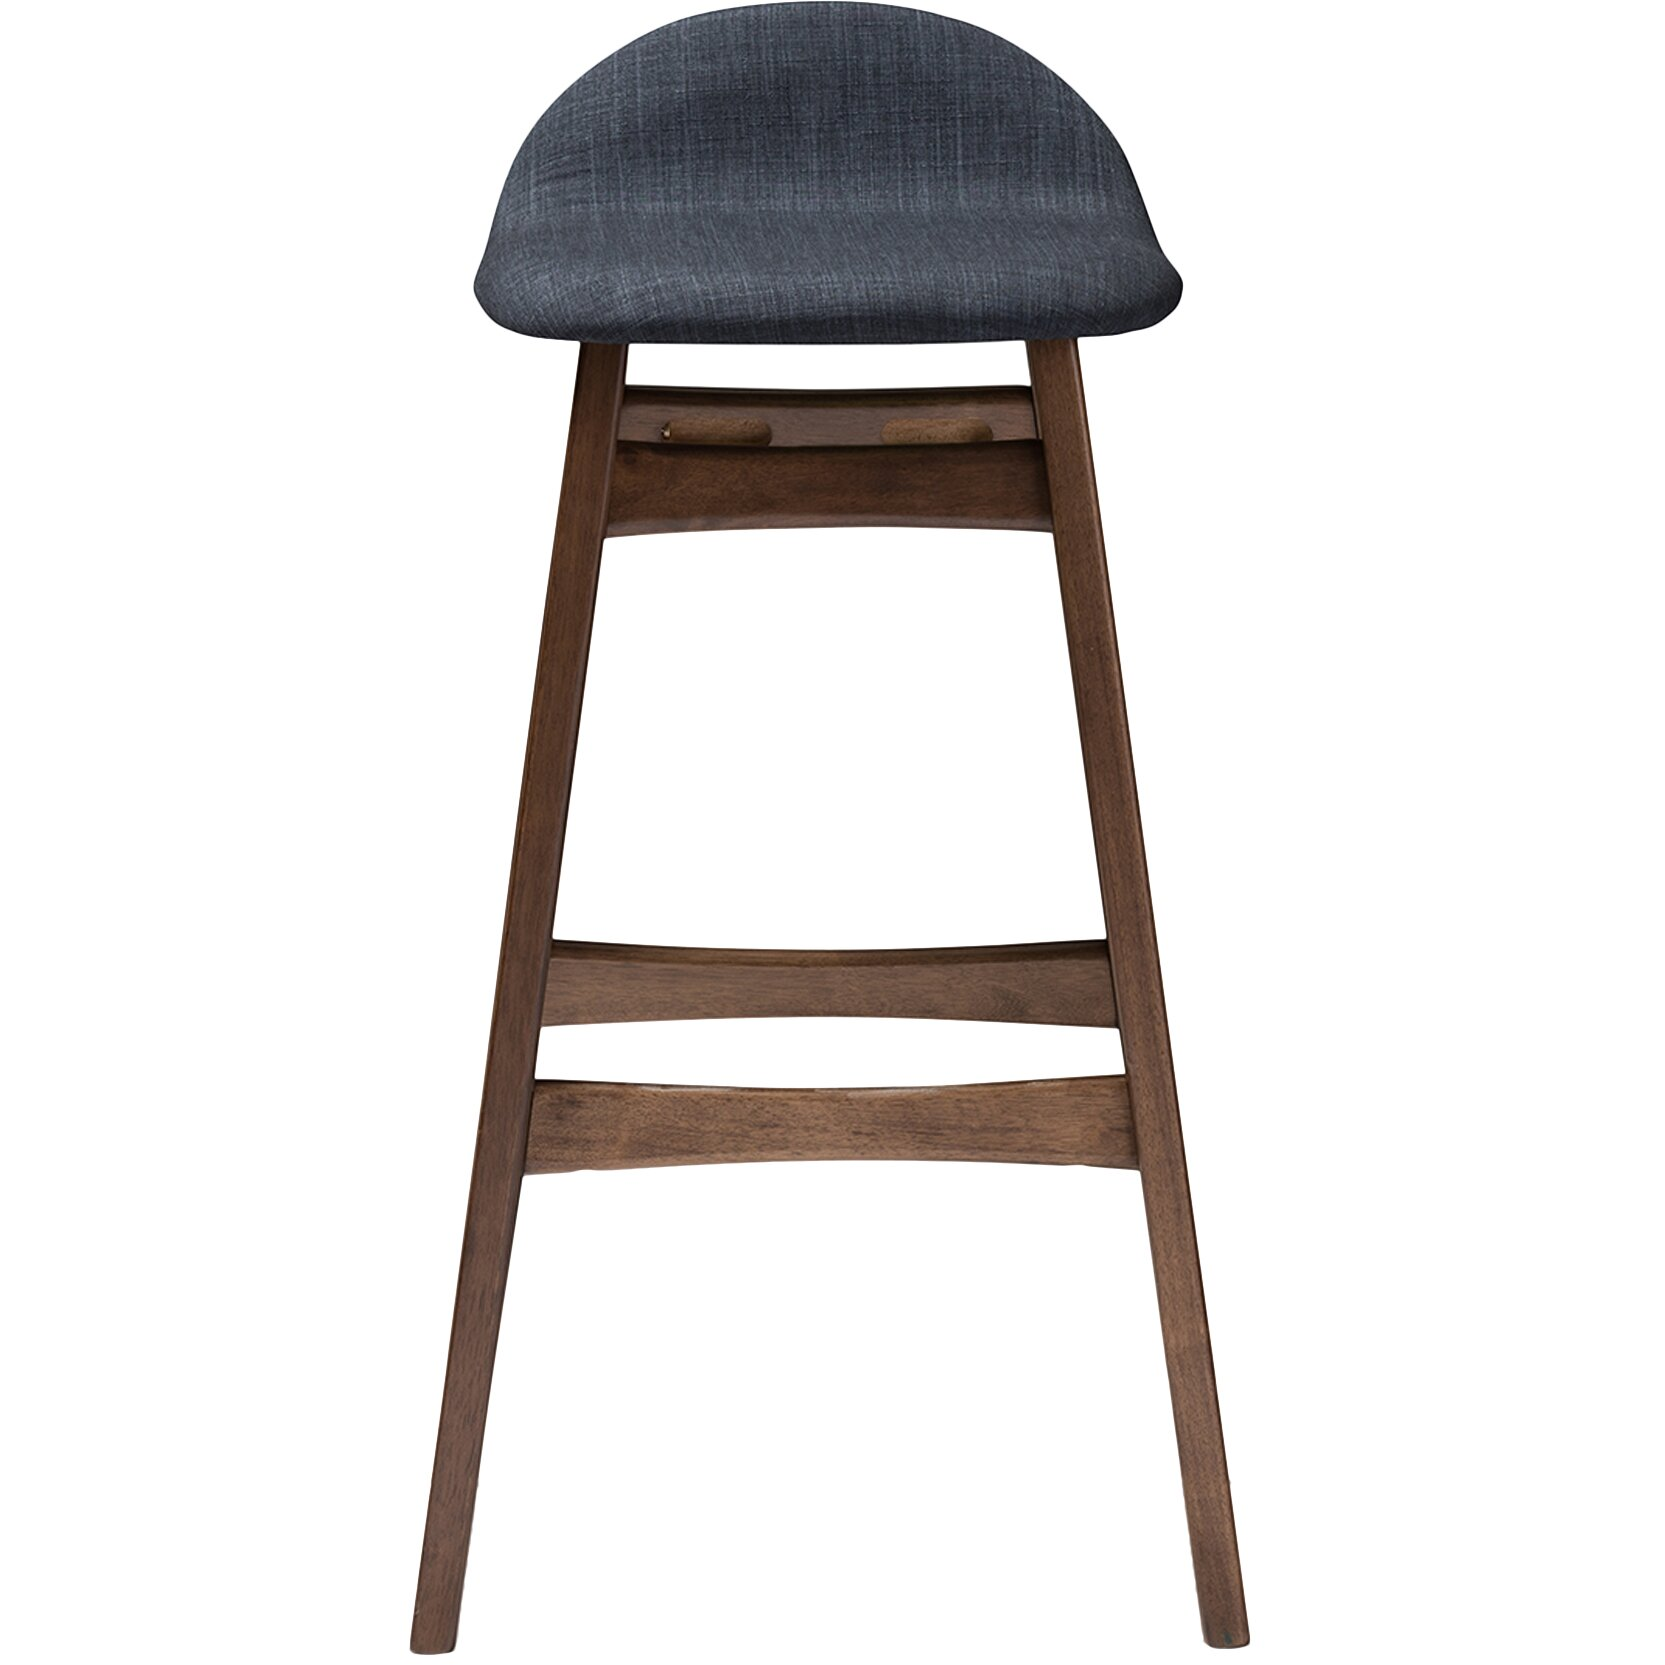 34 Inch Bar Stools Wholesale 34 Inch Bar Stools Wholesale